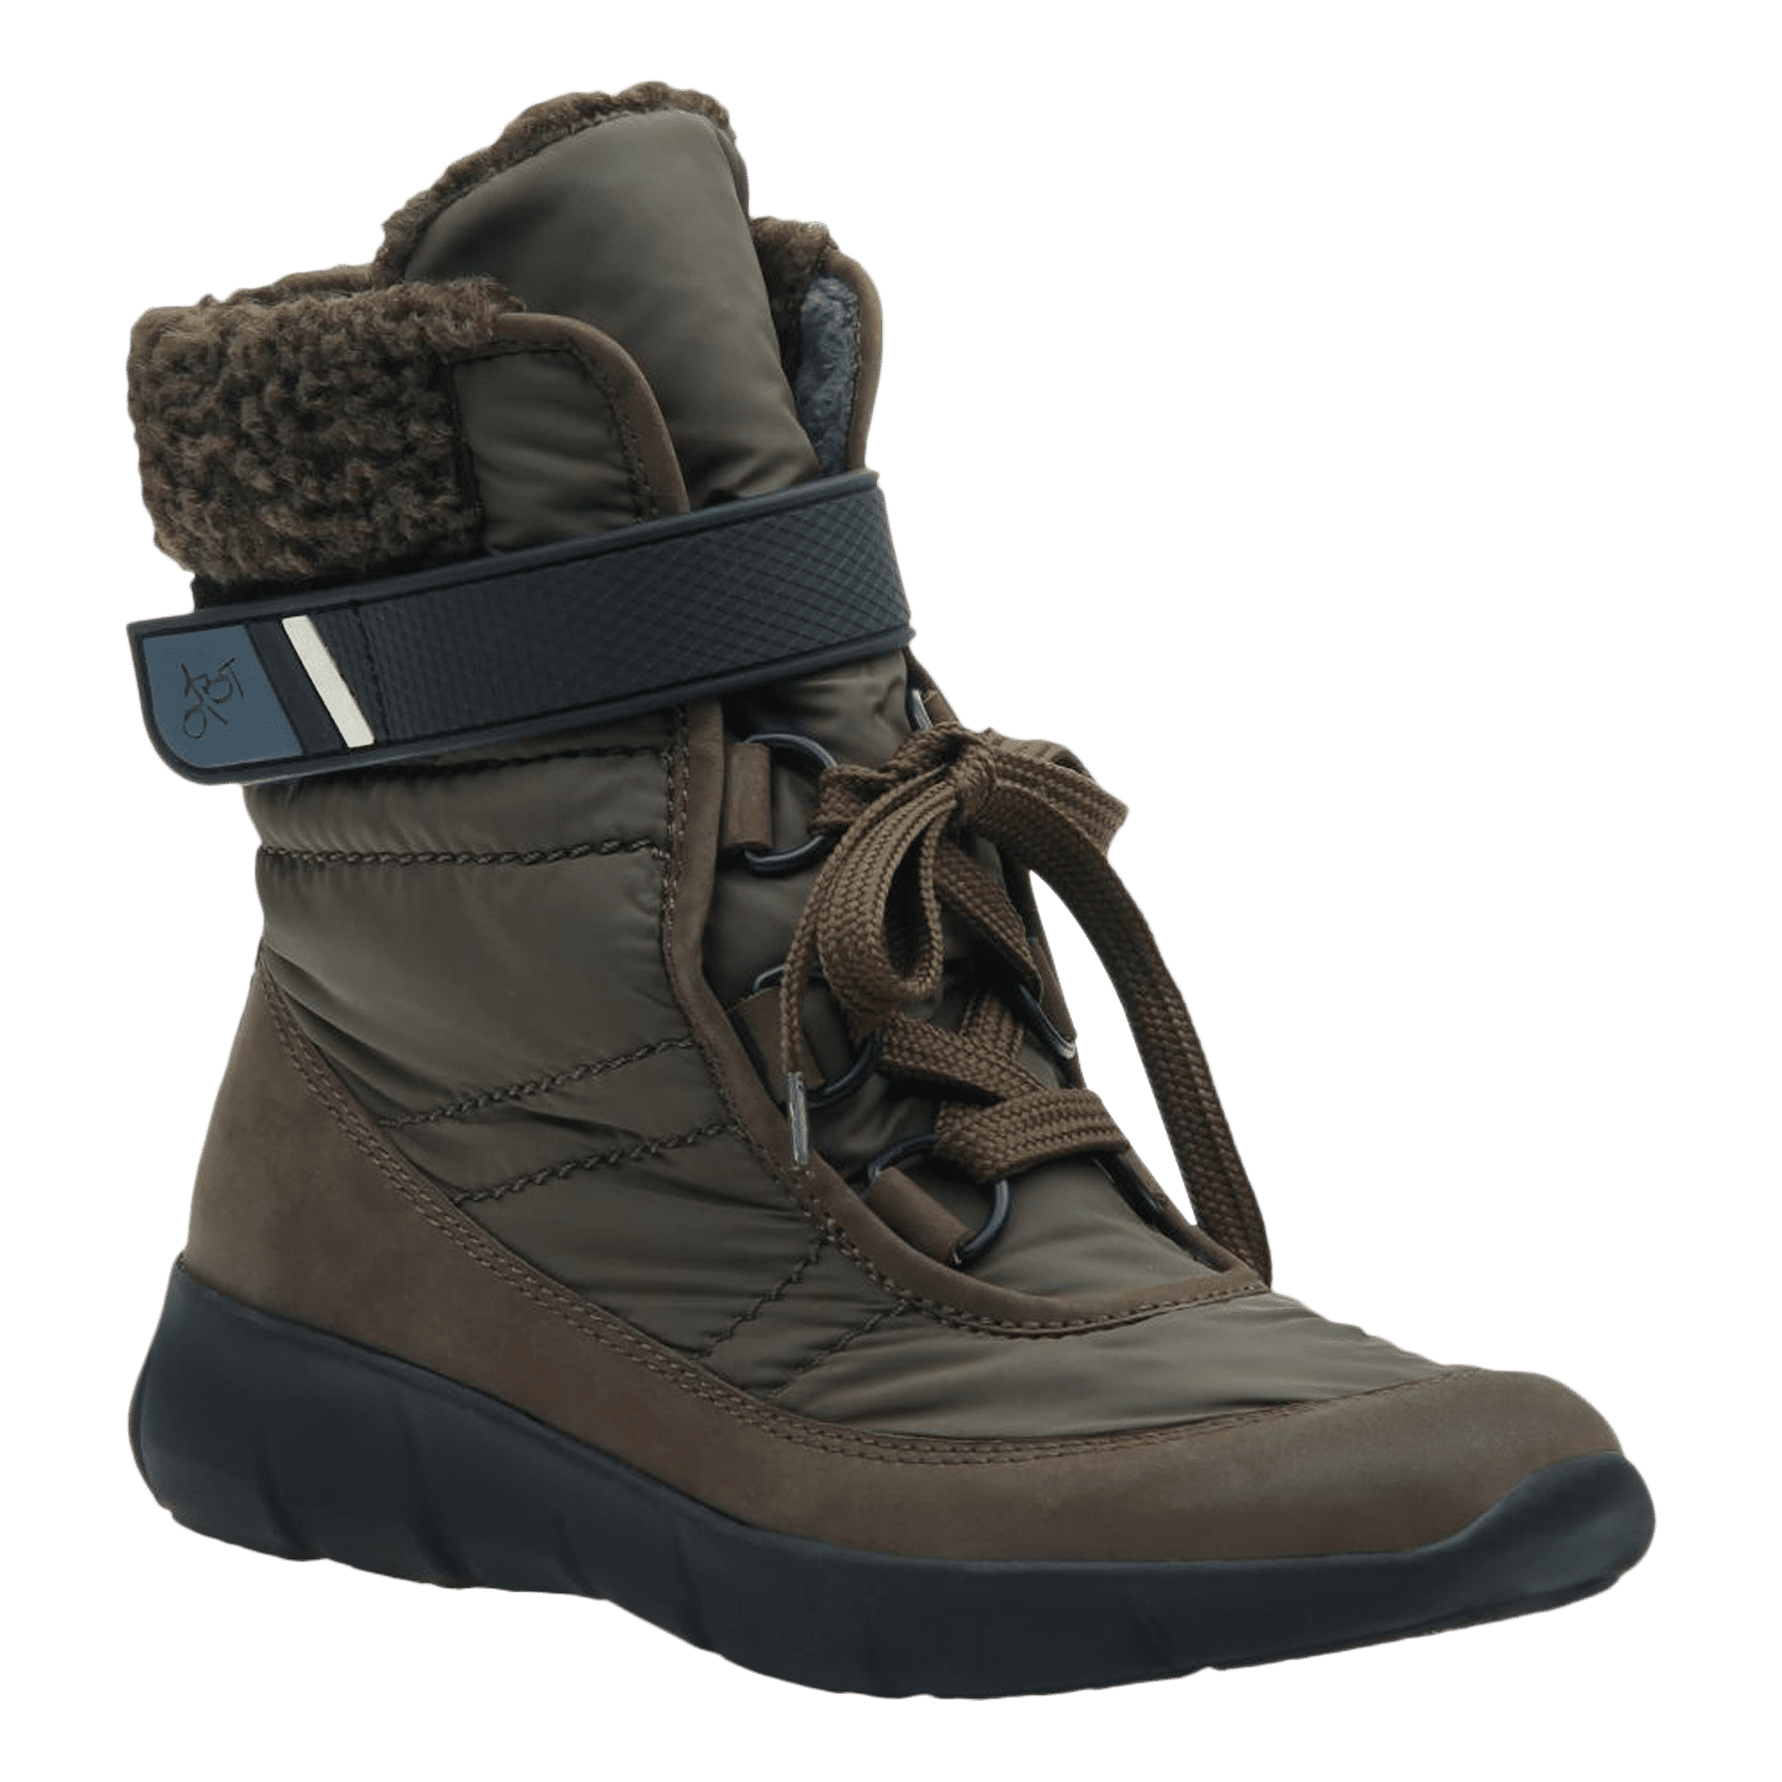 Womens cold weather boot pioneer in mint